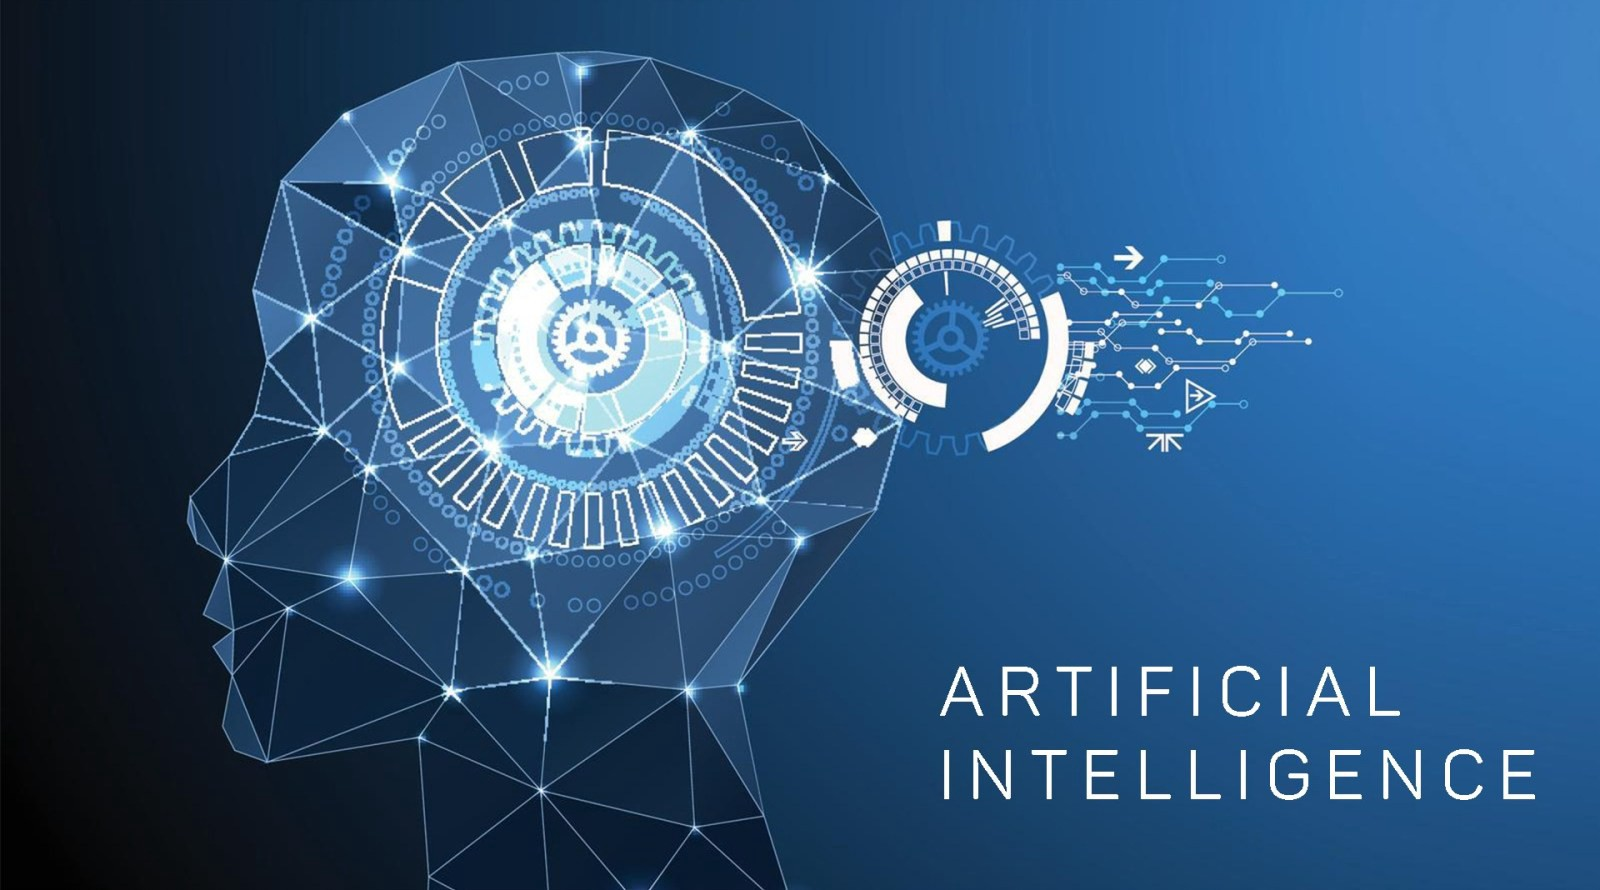 Phd thesis in artificial intelligence